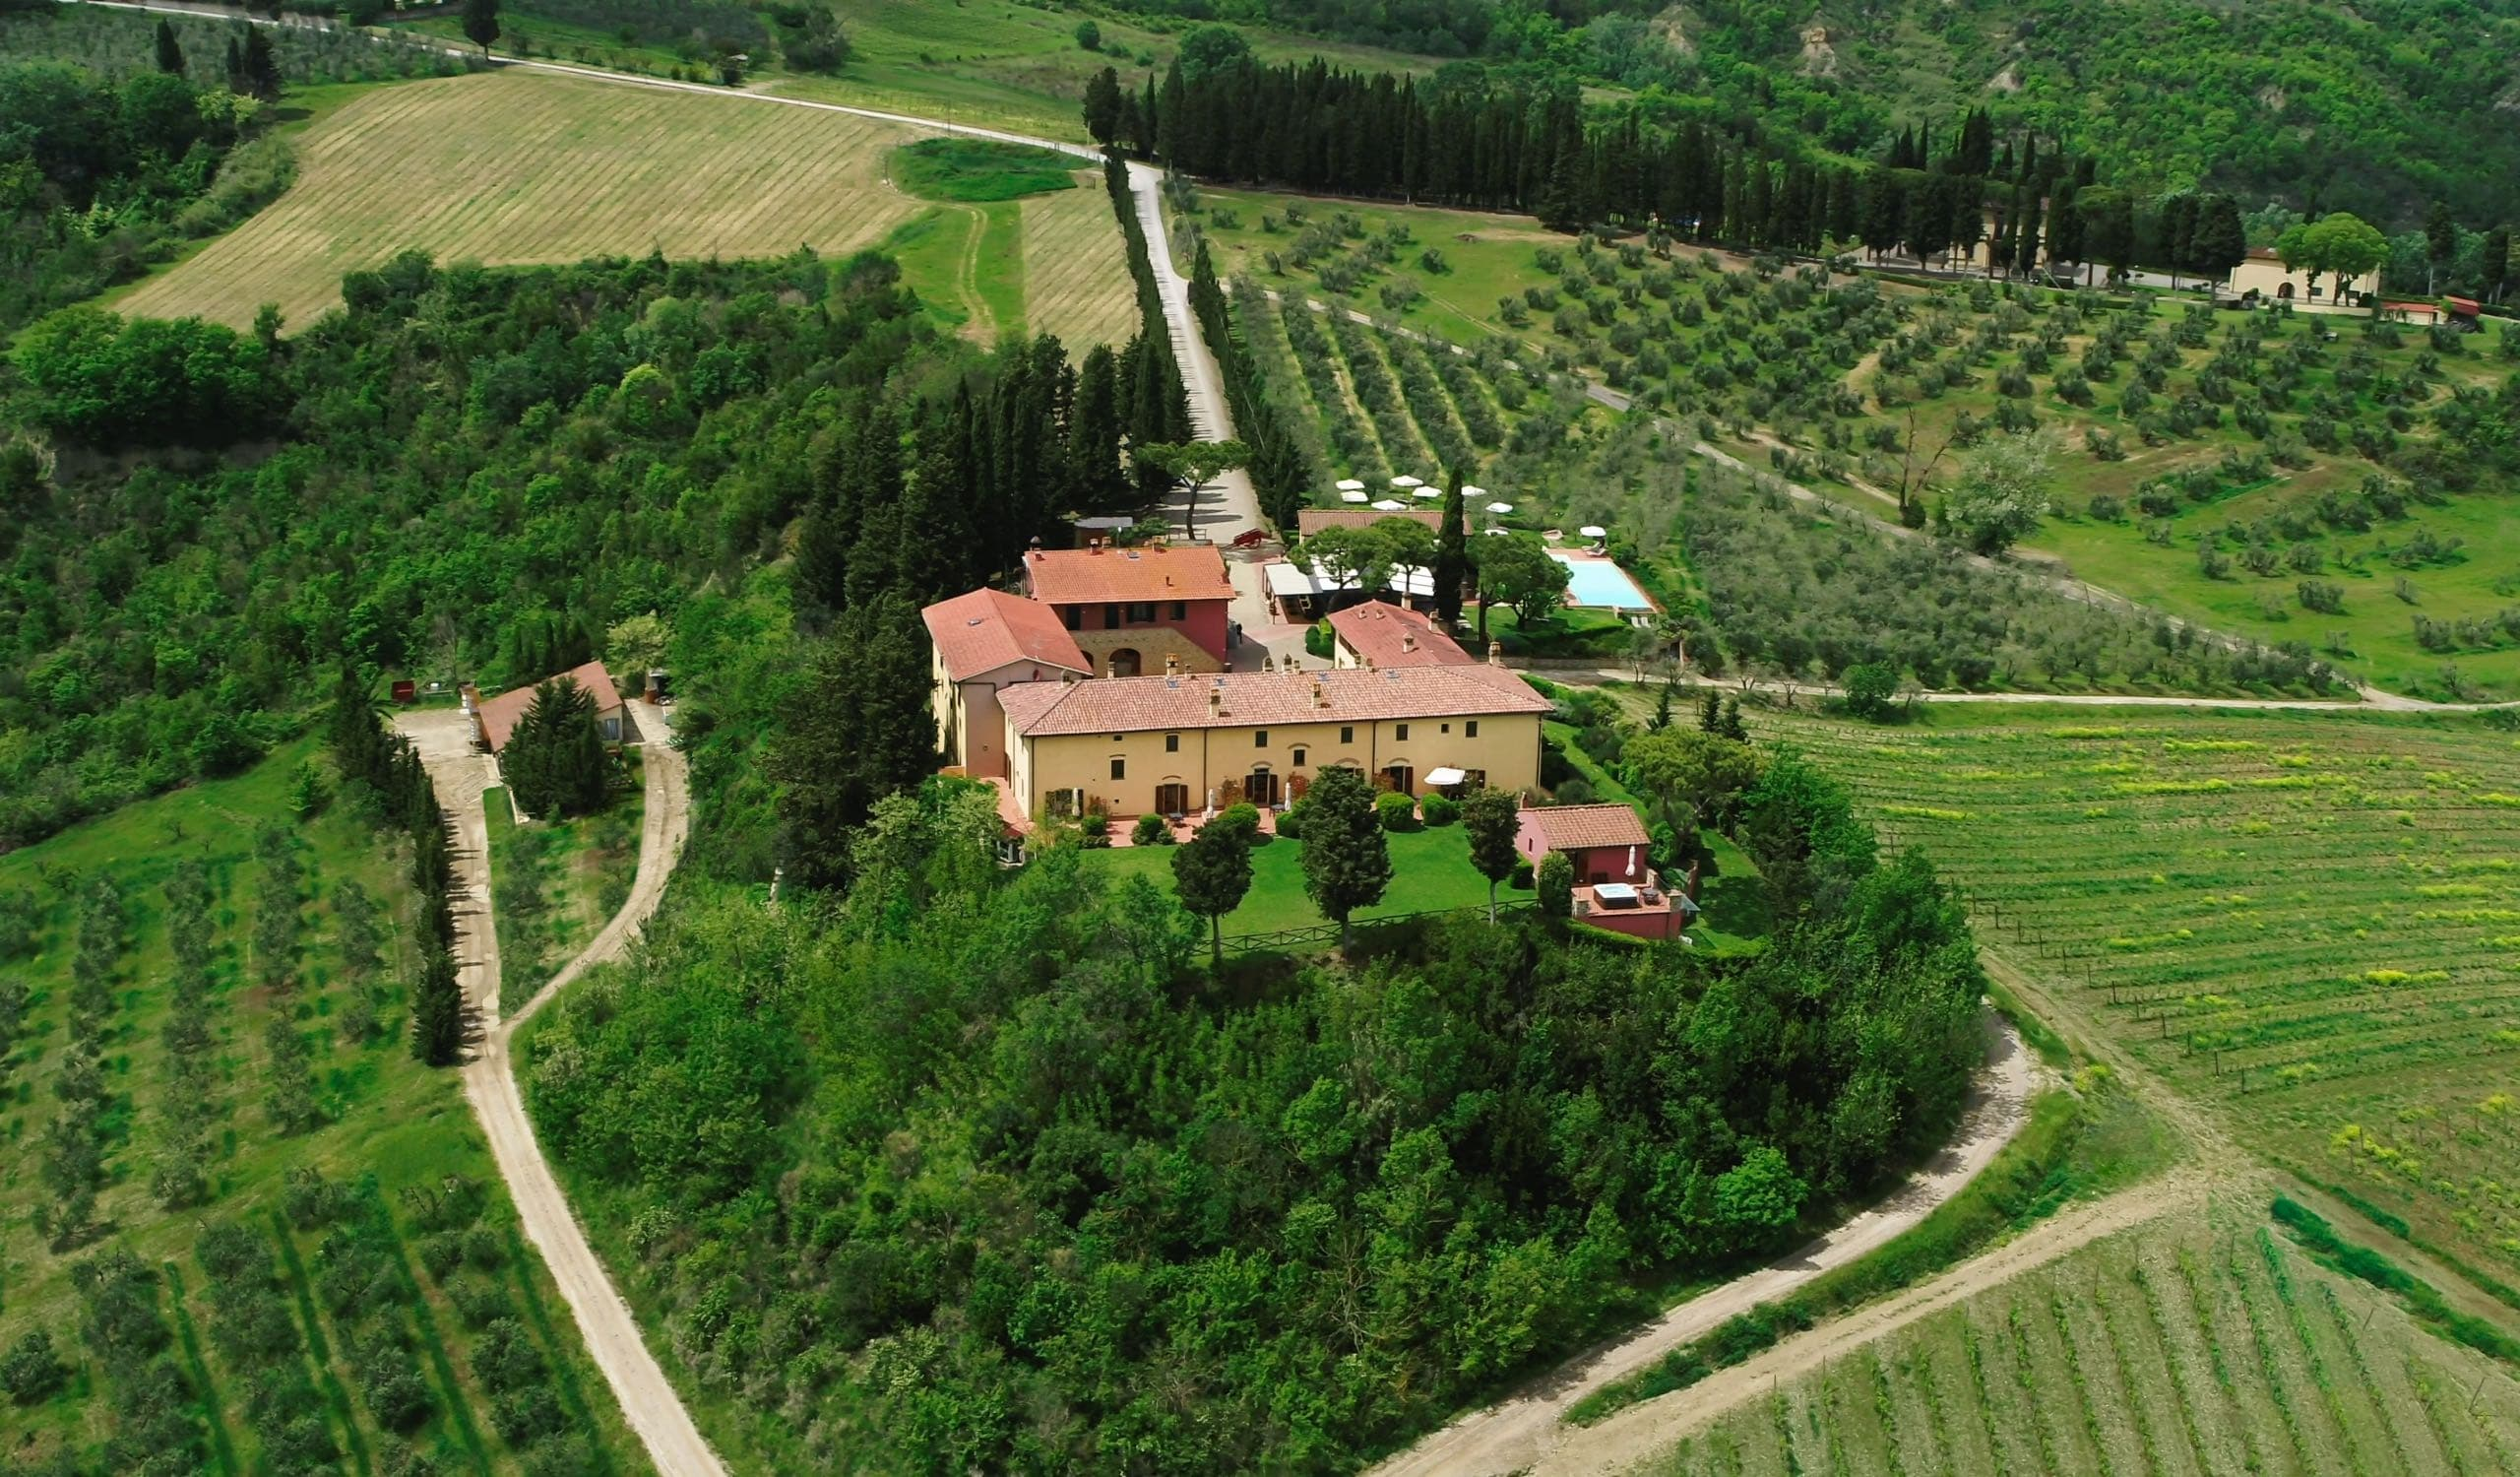 Aerial view of Borgo Divino